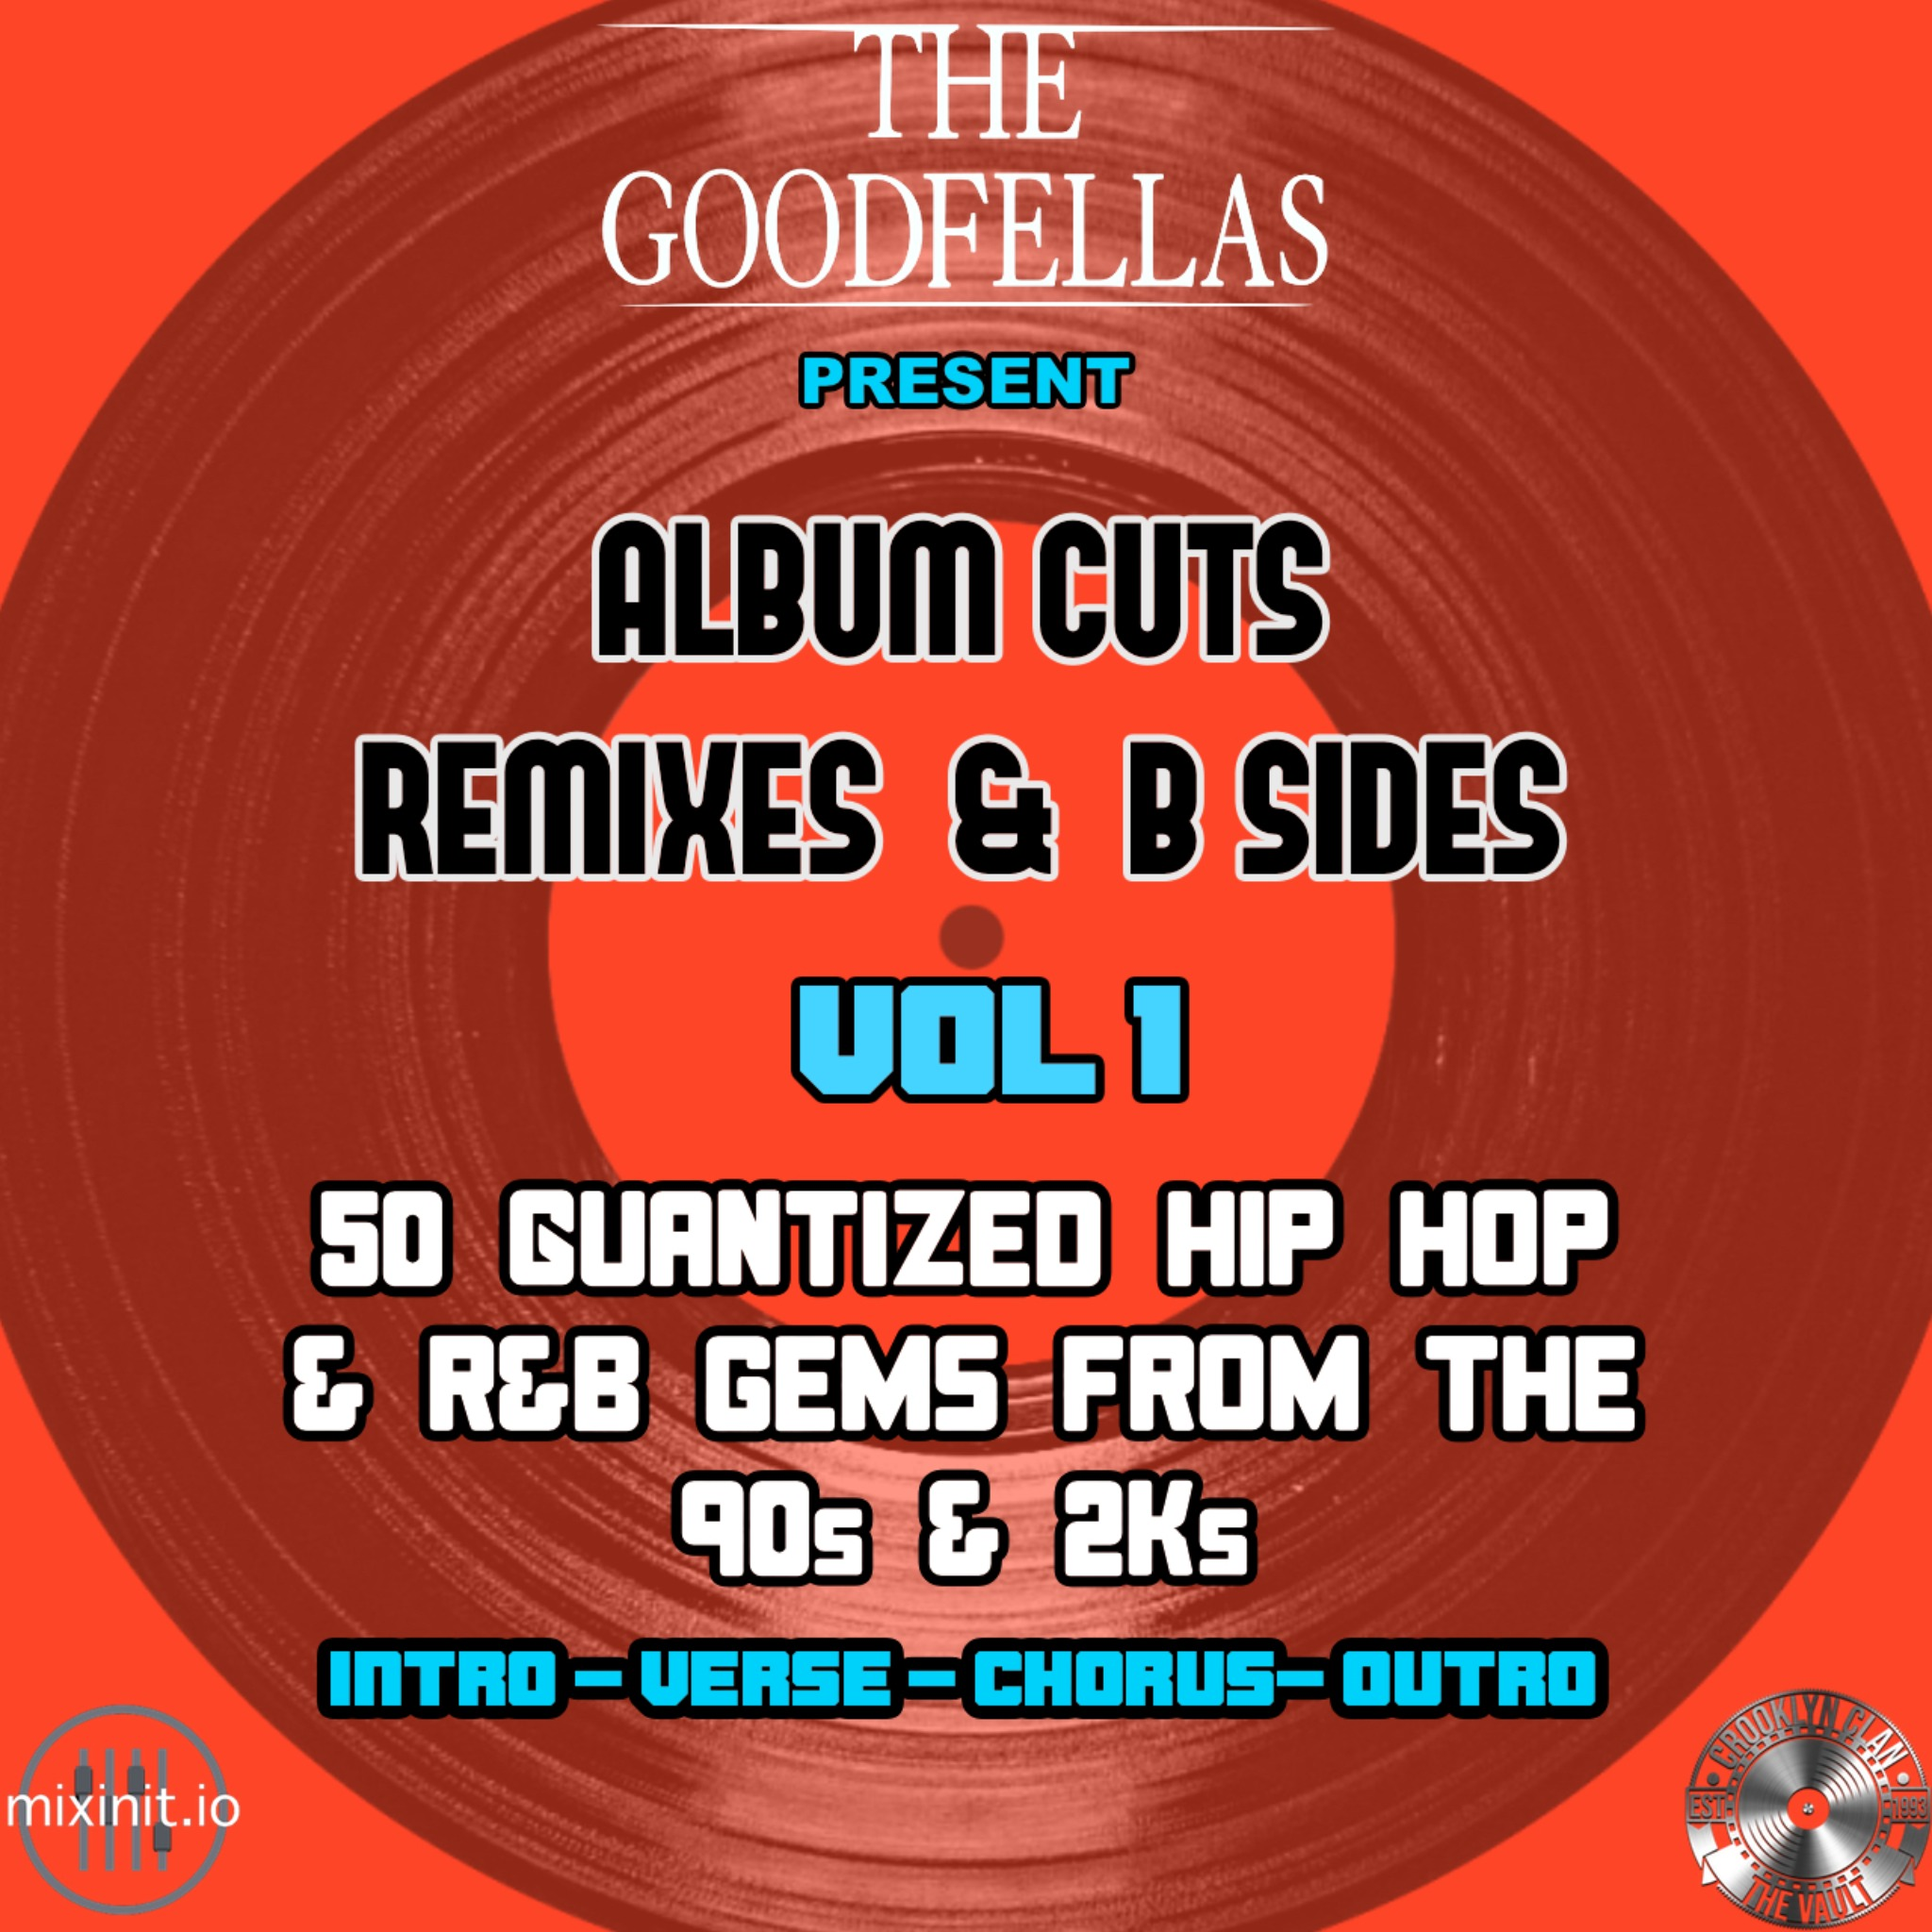 The Goodfellas - Album Cuts, Remixes, & B-Sides Vol.1 (50 Edits)